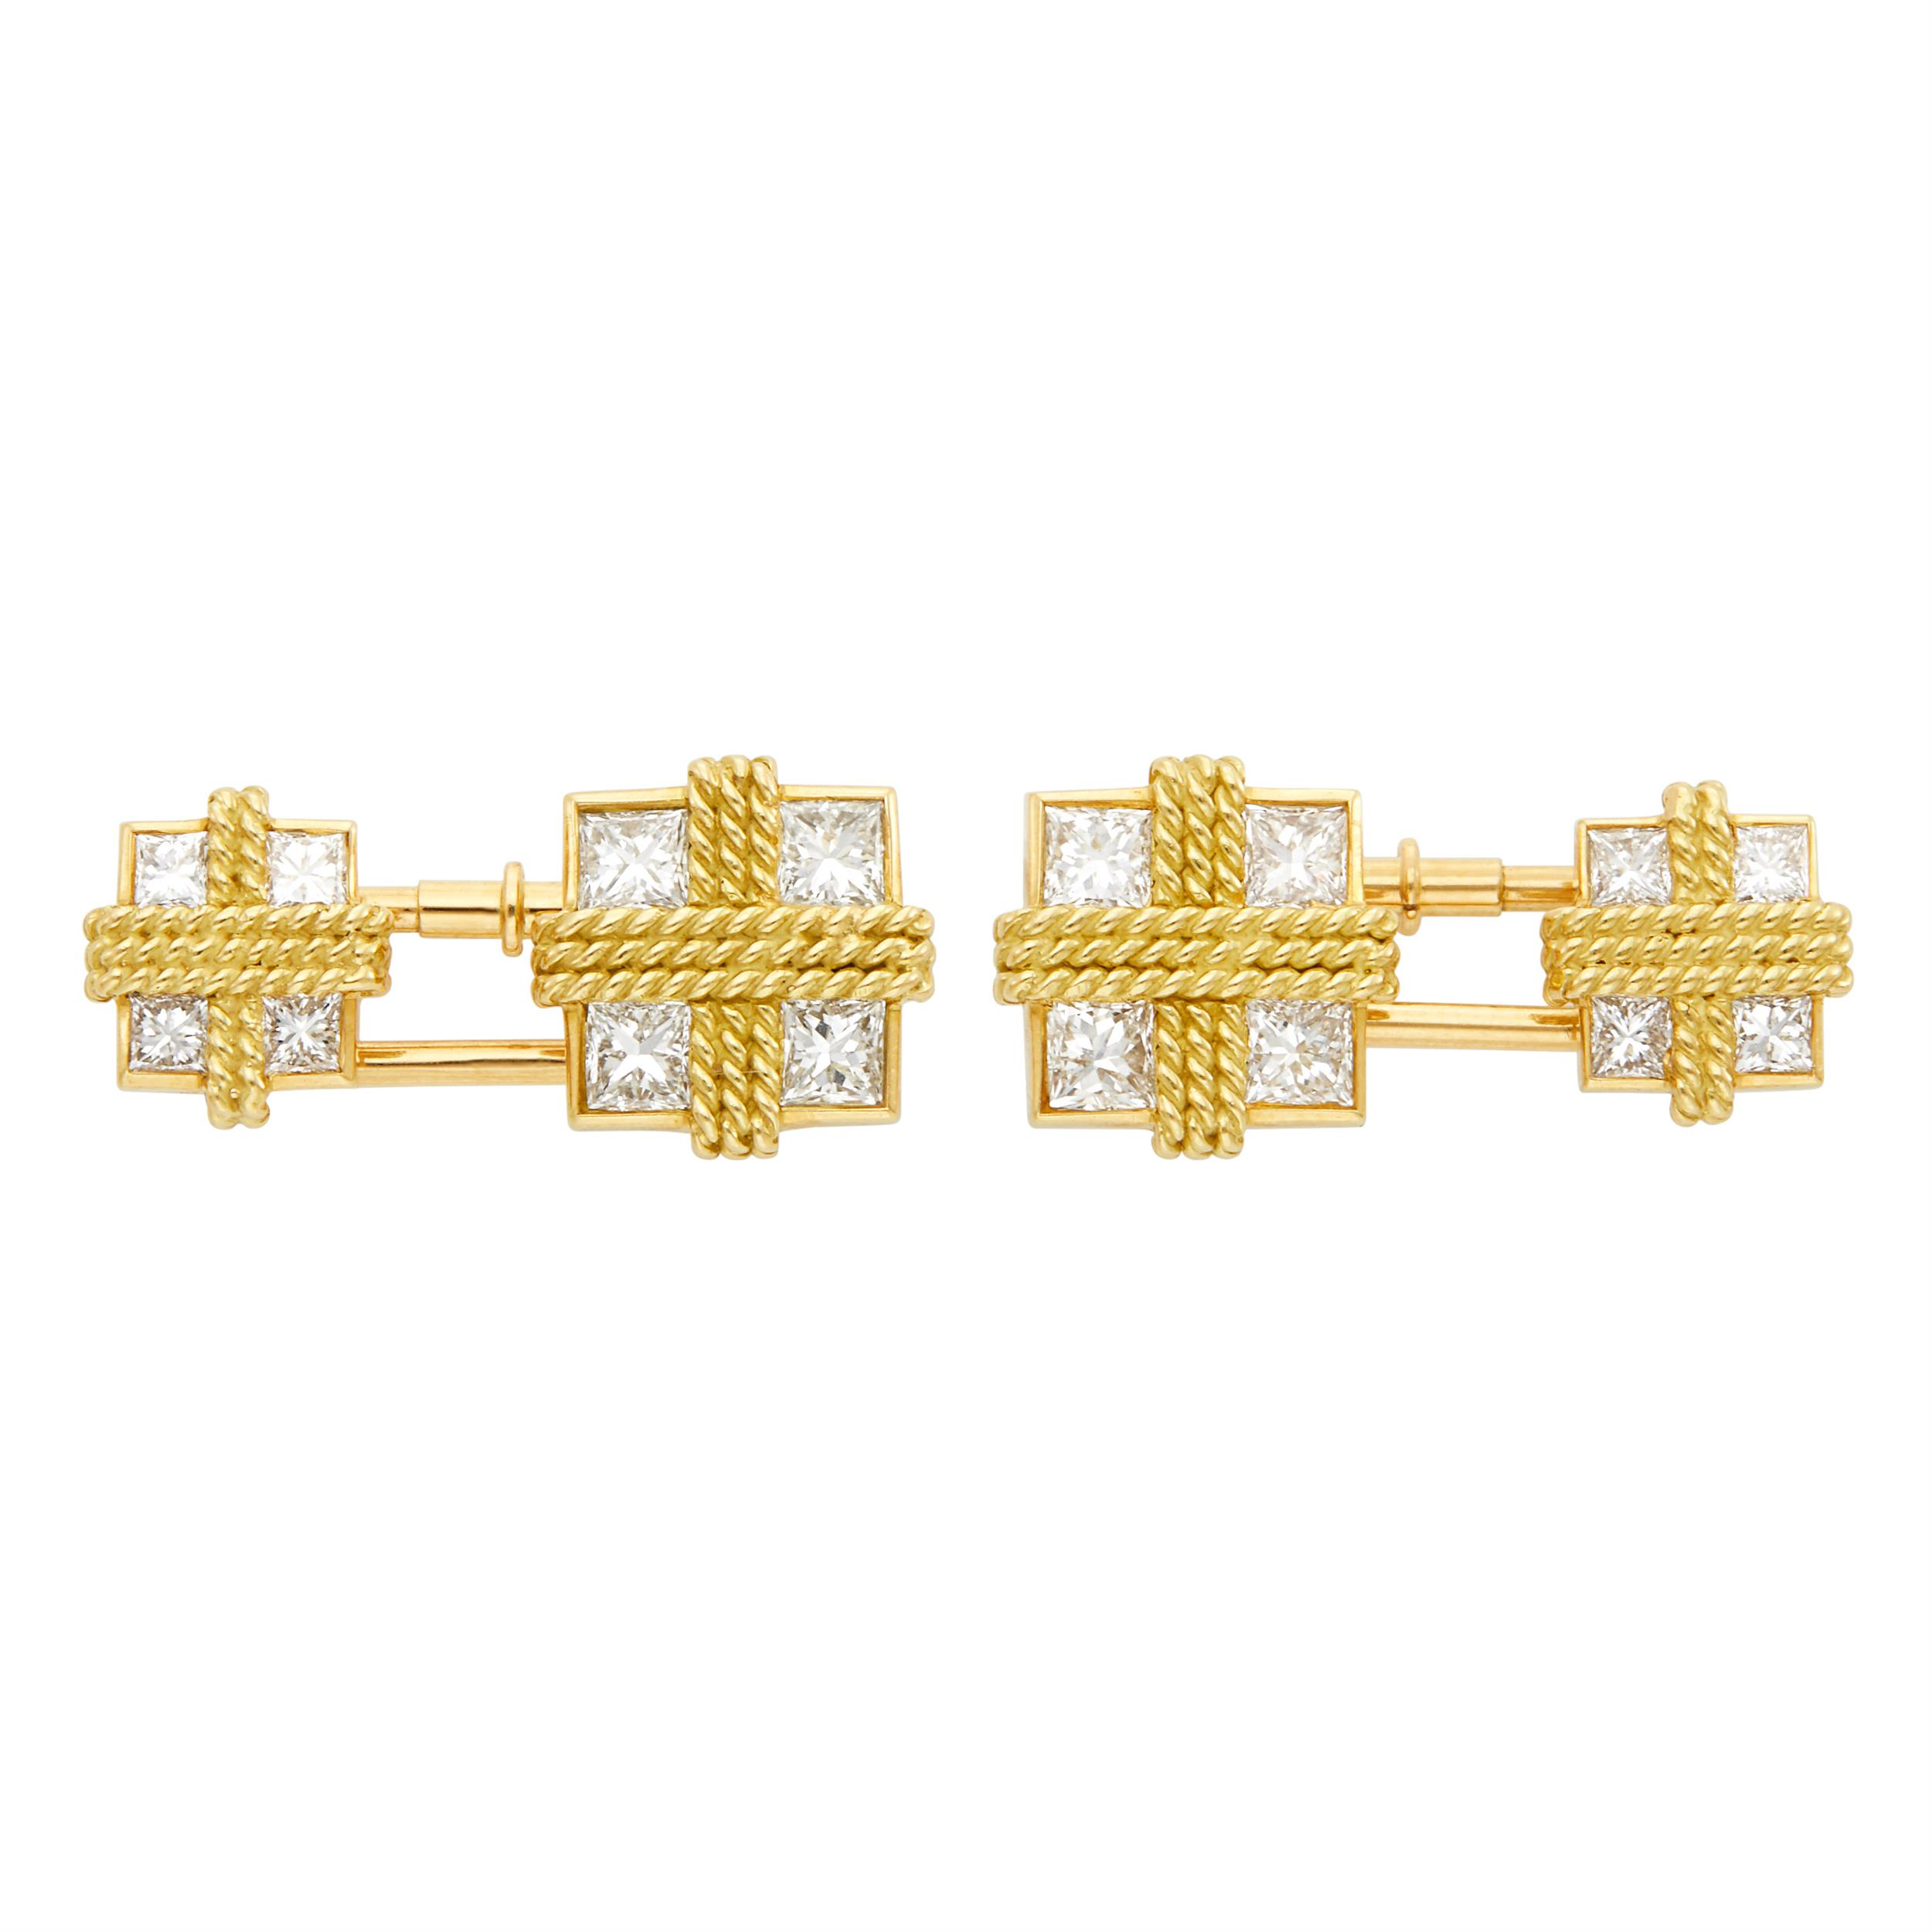 Lot image - Van Cleef & Arpels Pair of Gold and Diamond Cufflinks